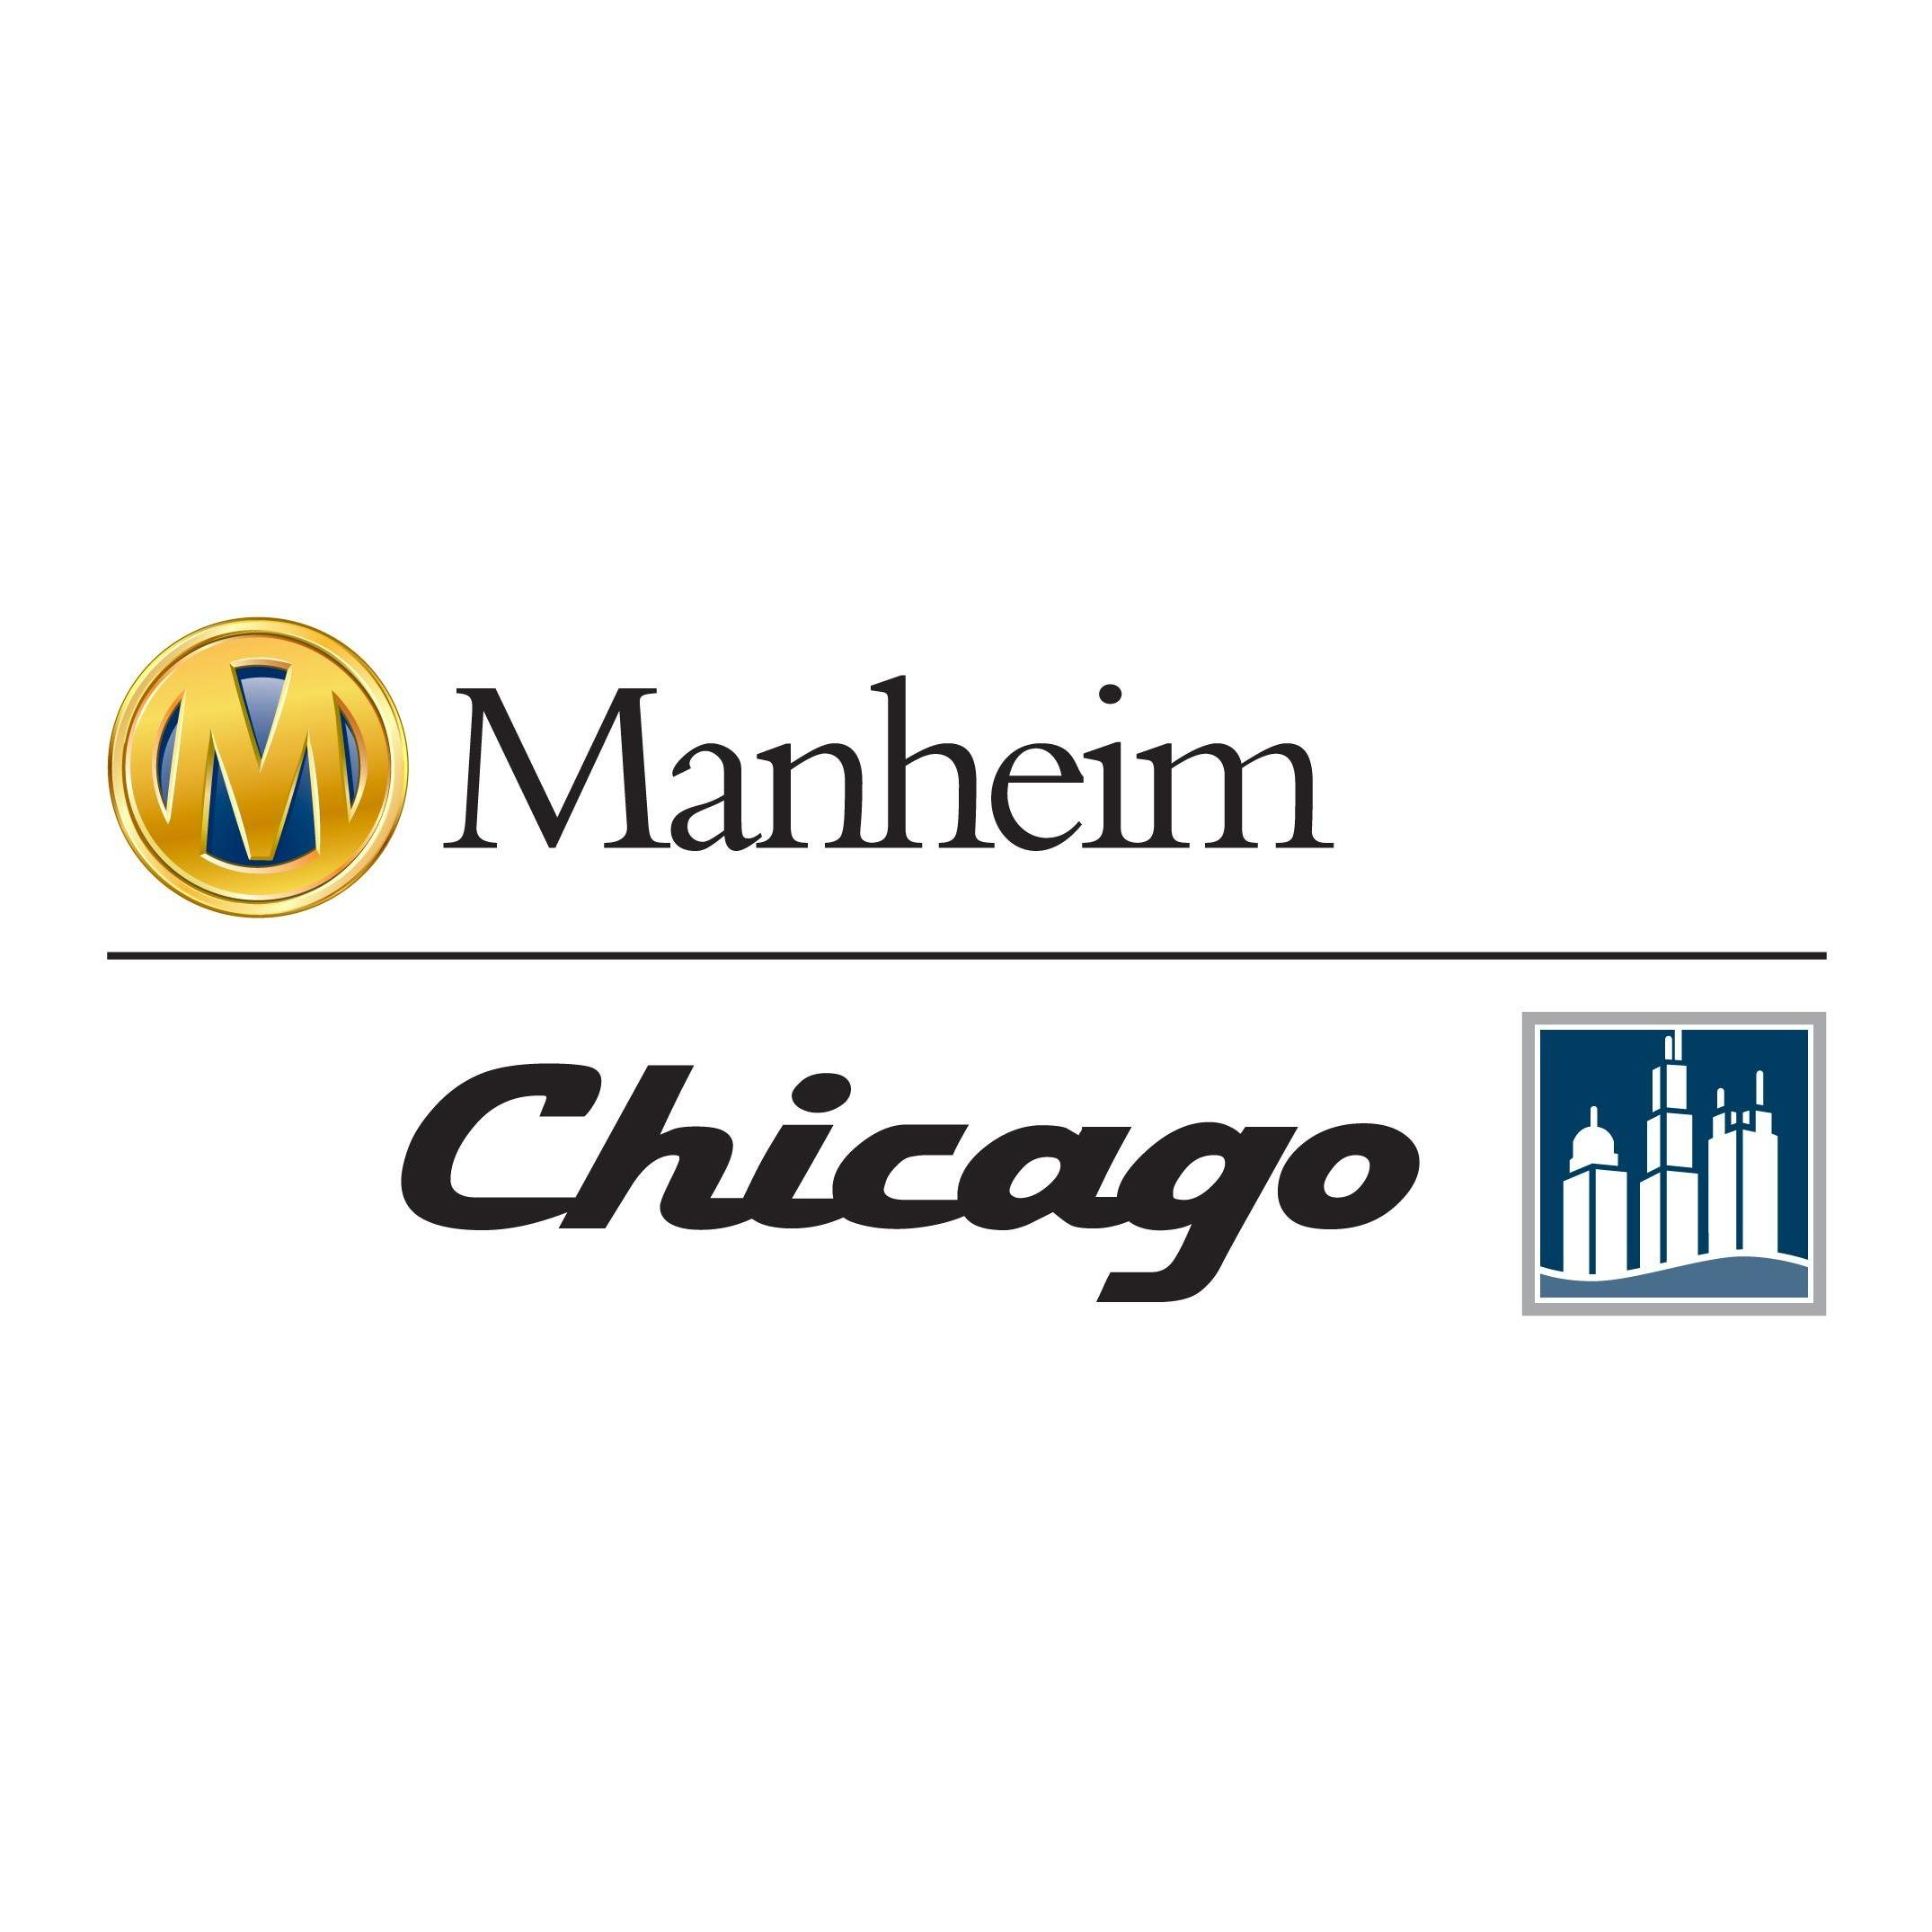 Manheim Chicago Cox Ave Matteson Il Automobile